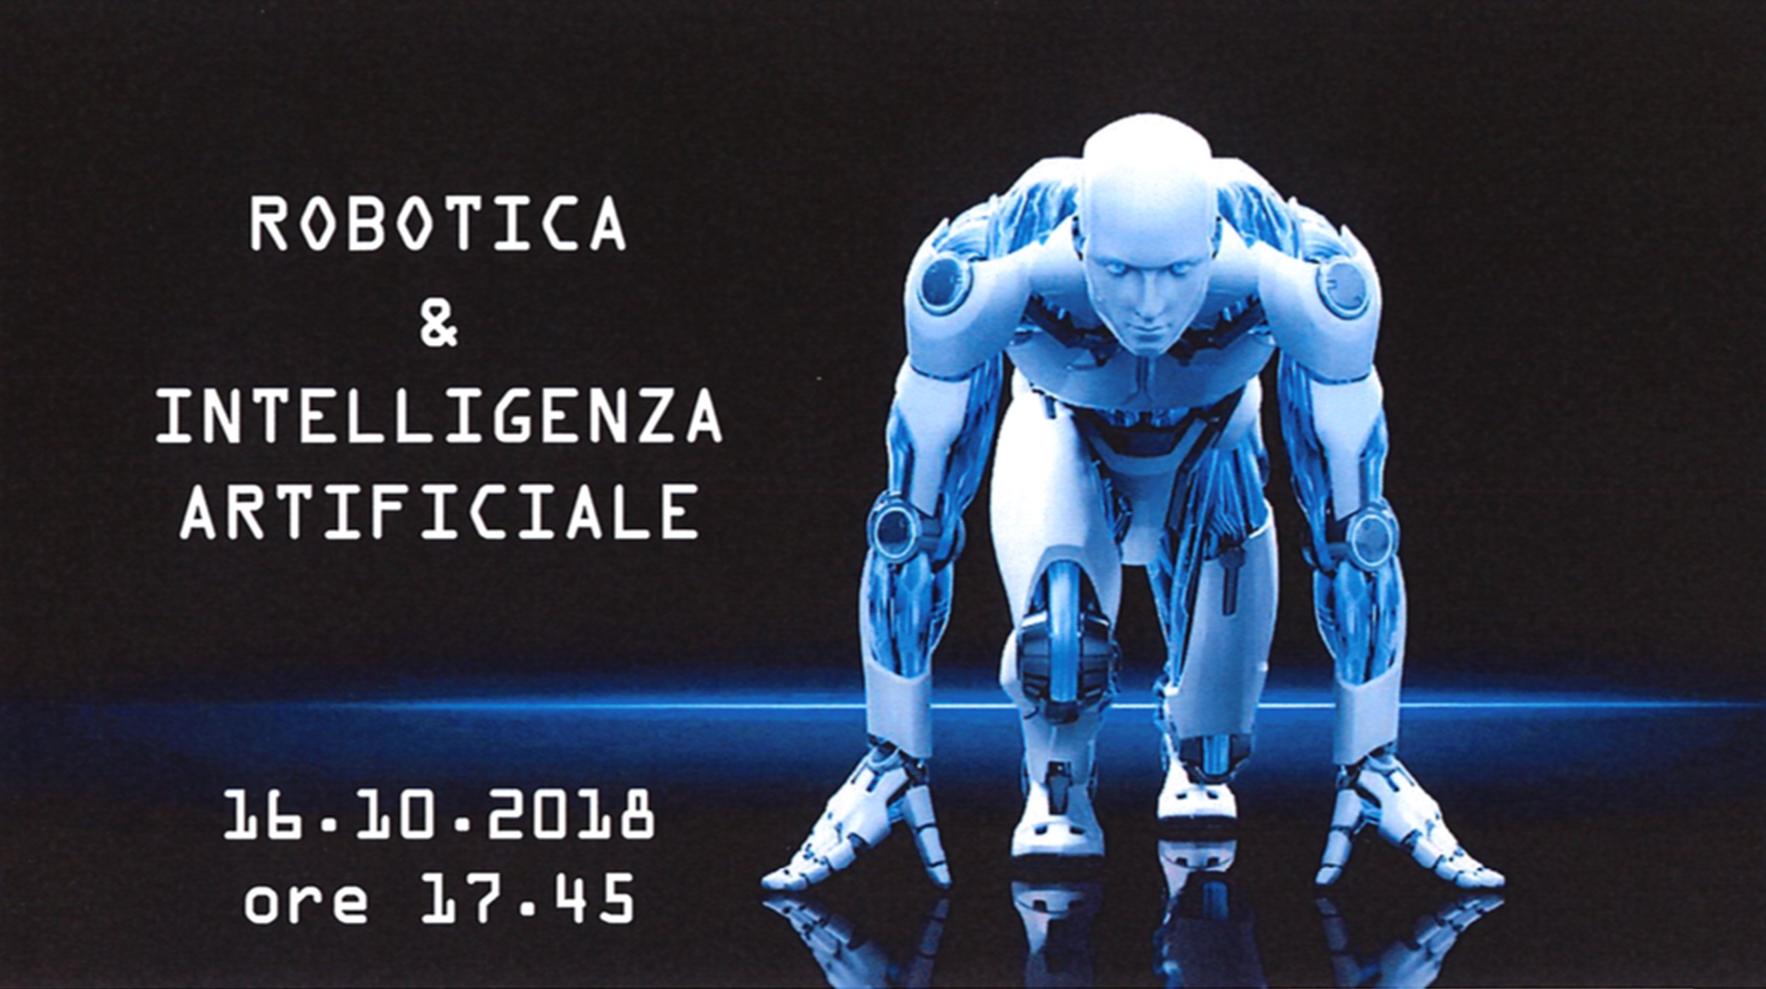 Robotica e Intelligenza Artificiale